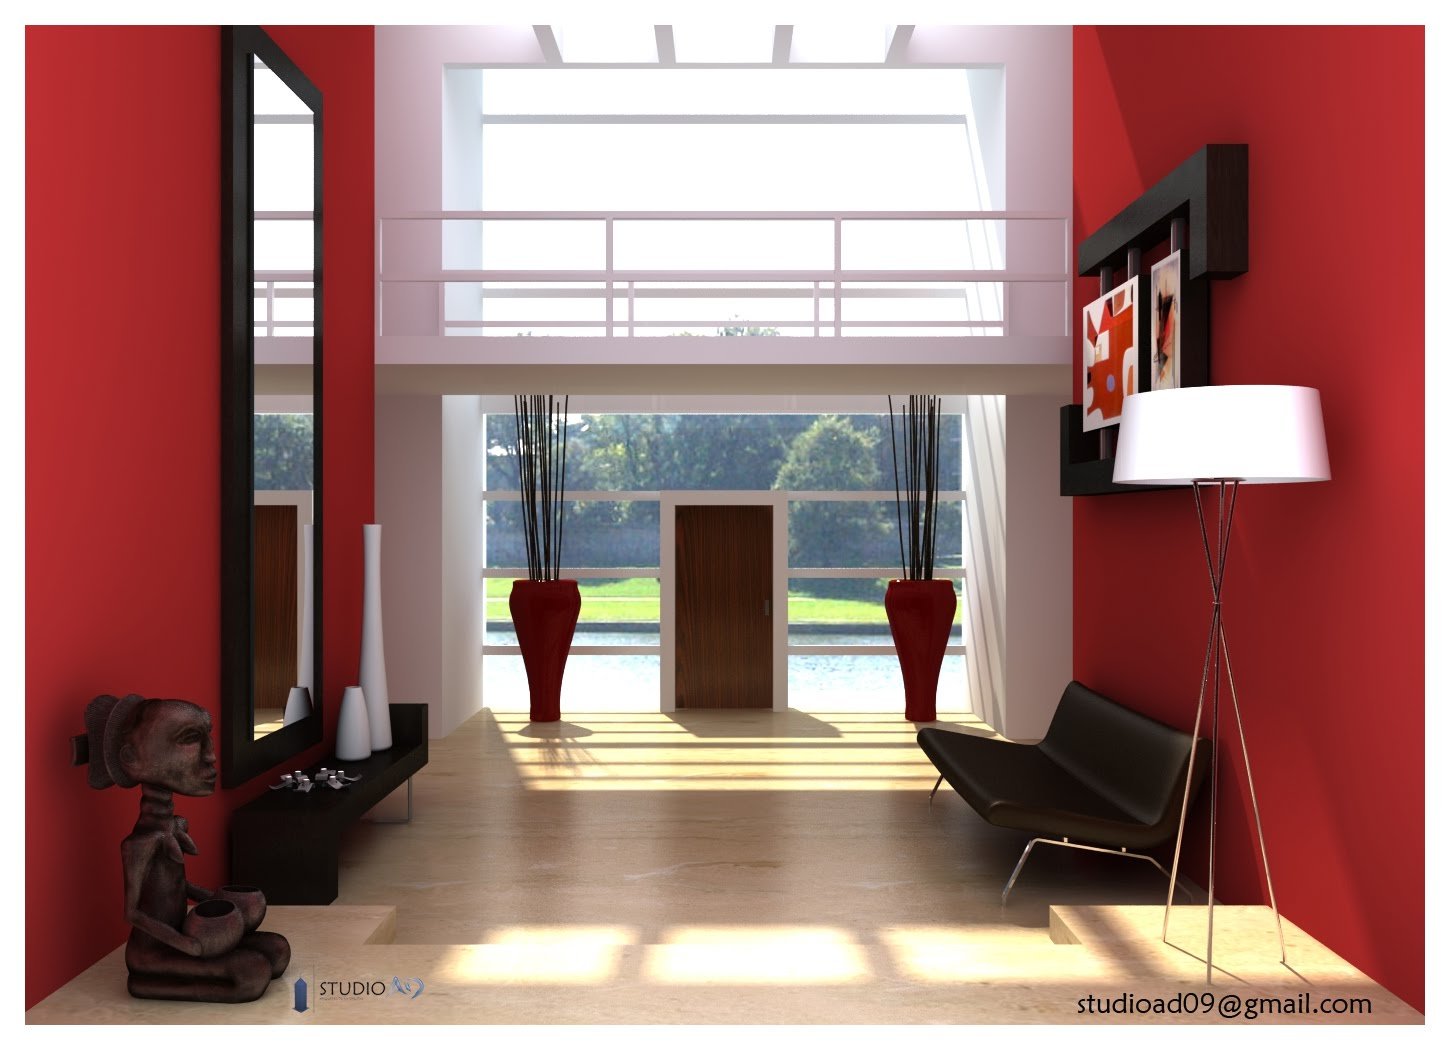 Studio ad interiores rojos for Decoracion de interiores color rojo